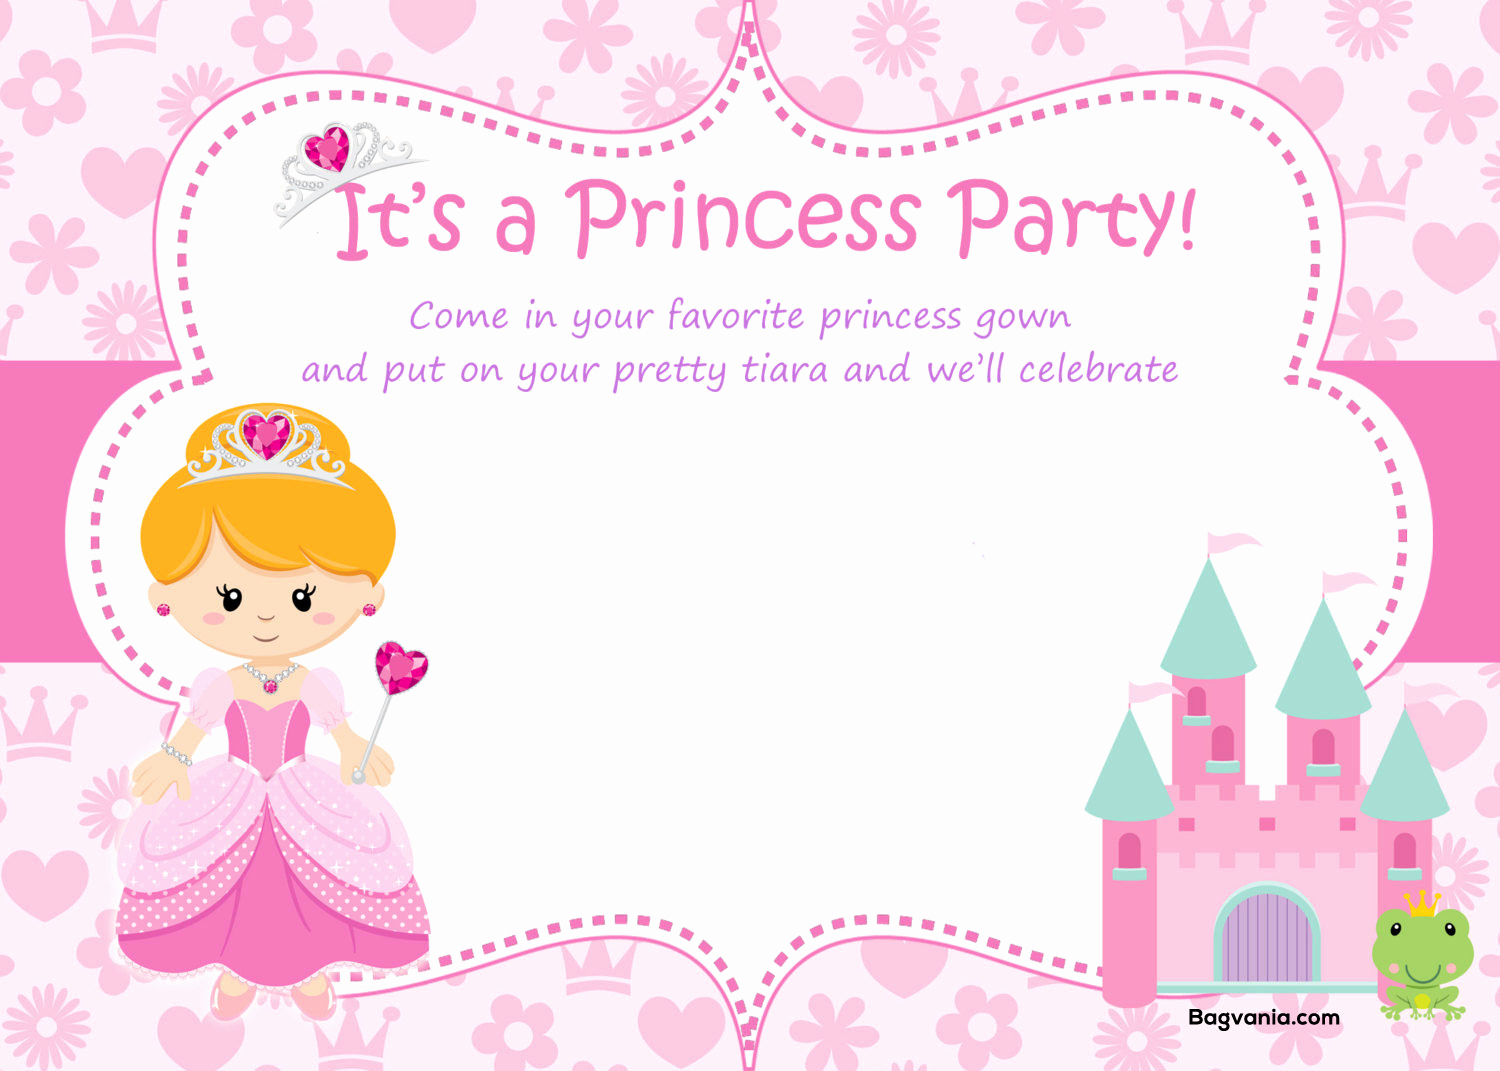 Favorite Things Party Invitation Template New Free Princess Birthday Invitations – Free Printable